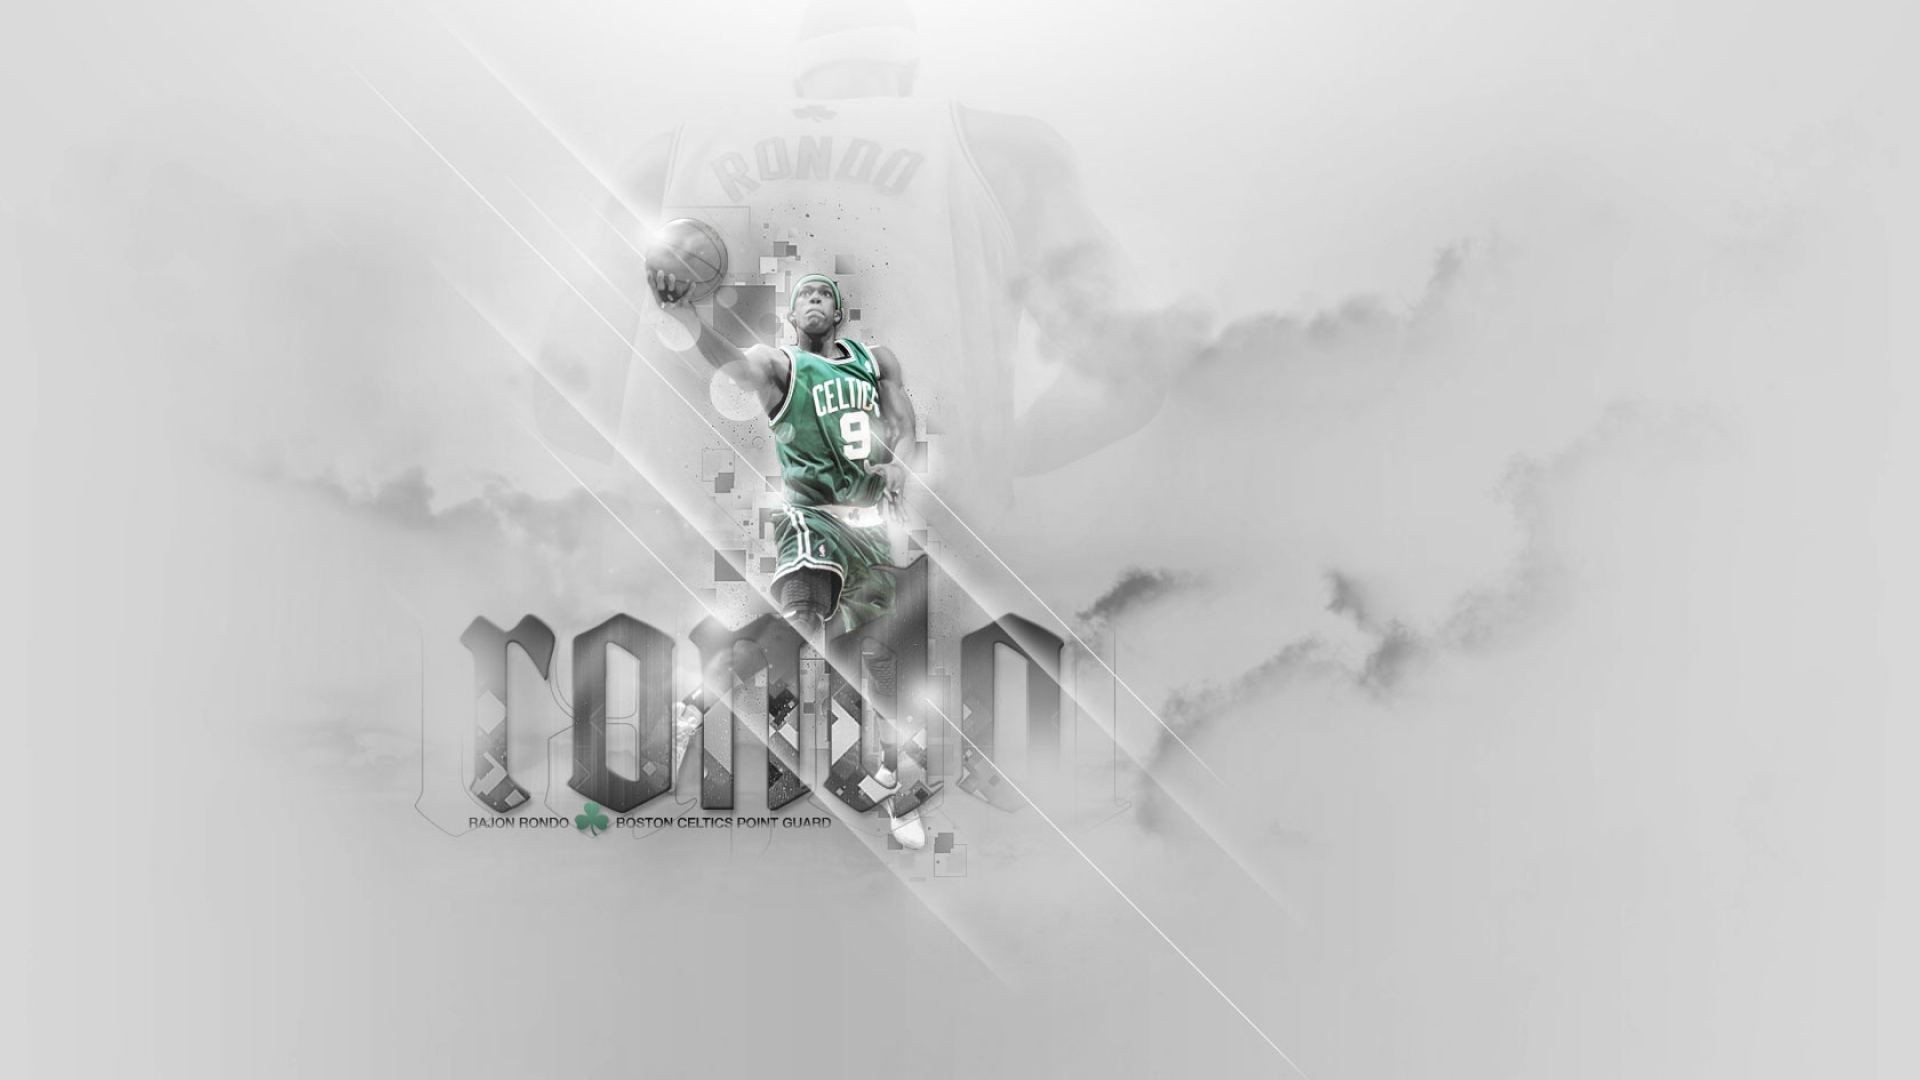 Rajon Rondo Layup basket ball wallpaper